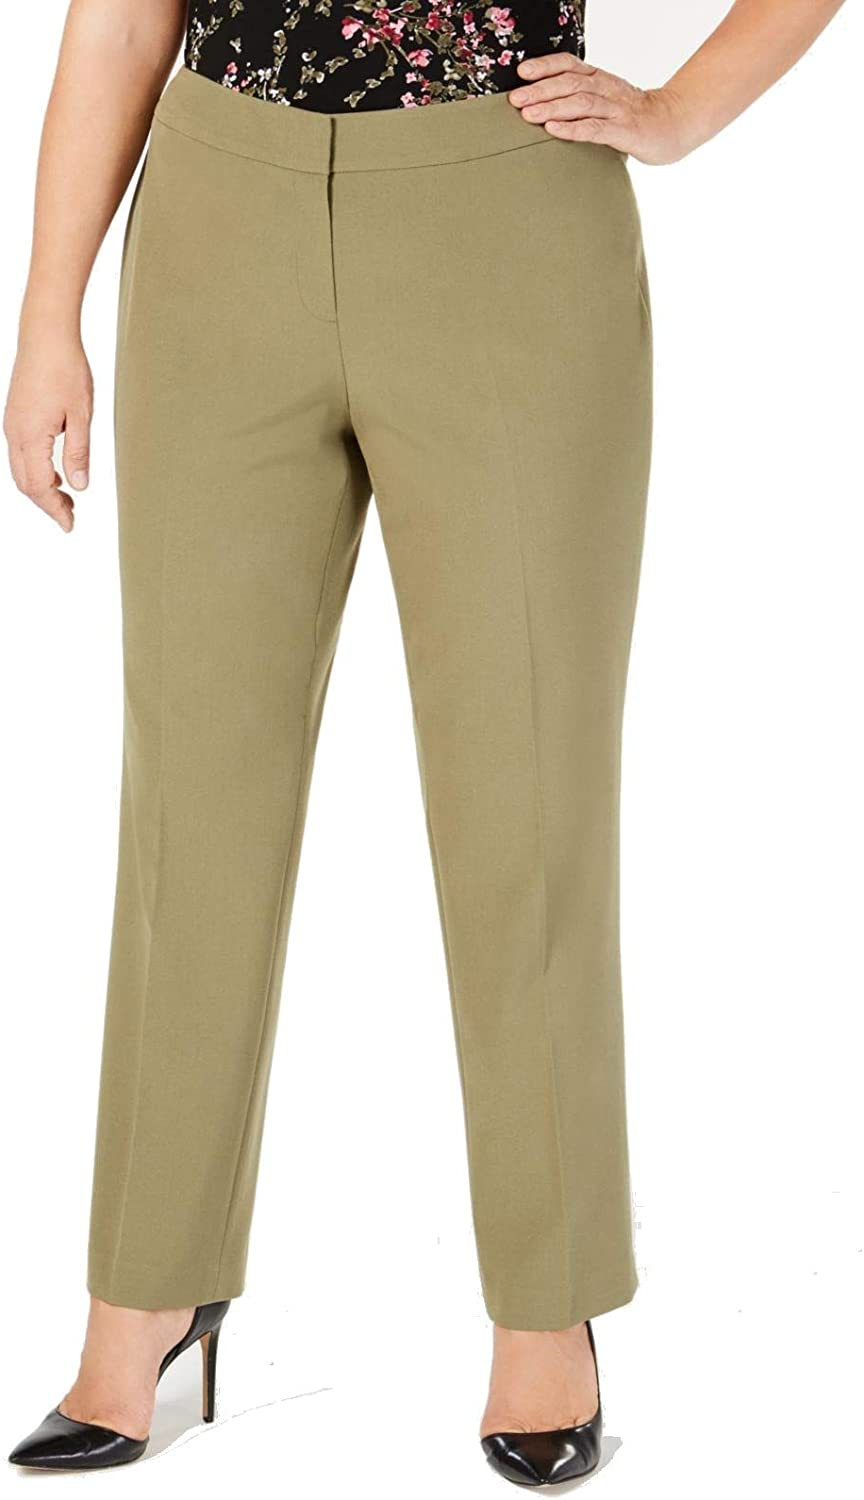 List price NINE WEST Women's Max 60% OFF Pant Stretch